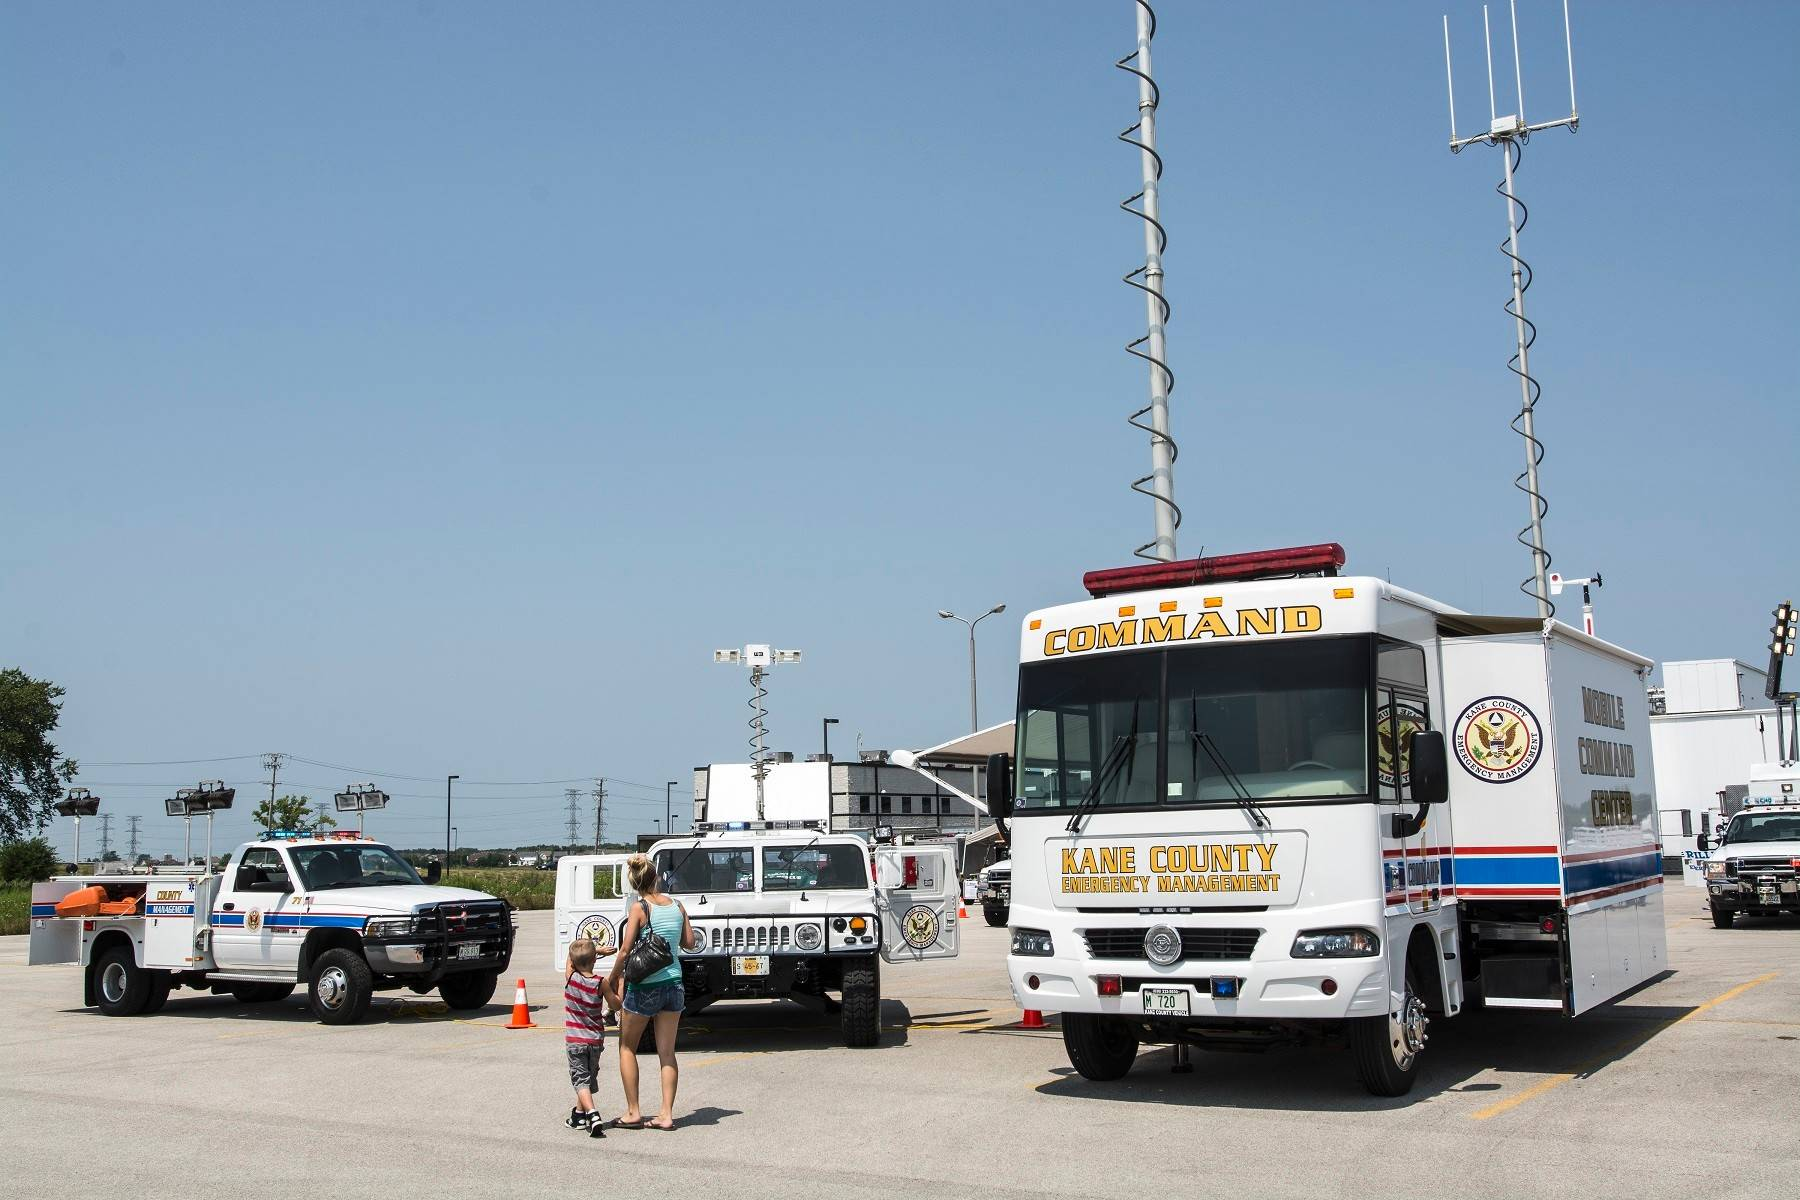 In addition to vintage vehicles, modern machines like a Hummer and Kane County Emergency Department's mobile command center, were on display.